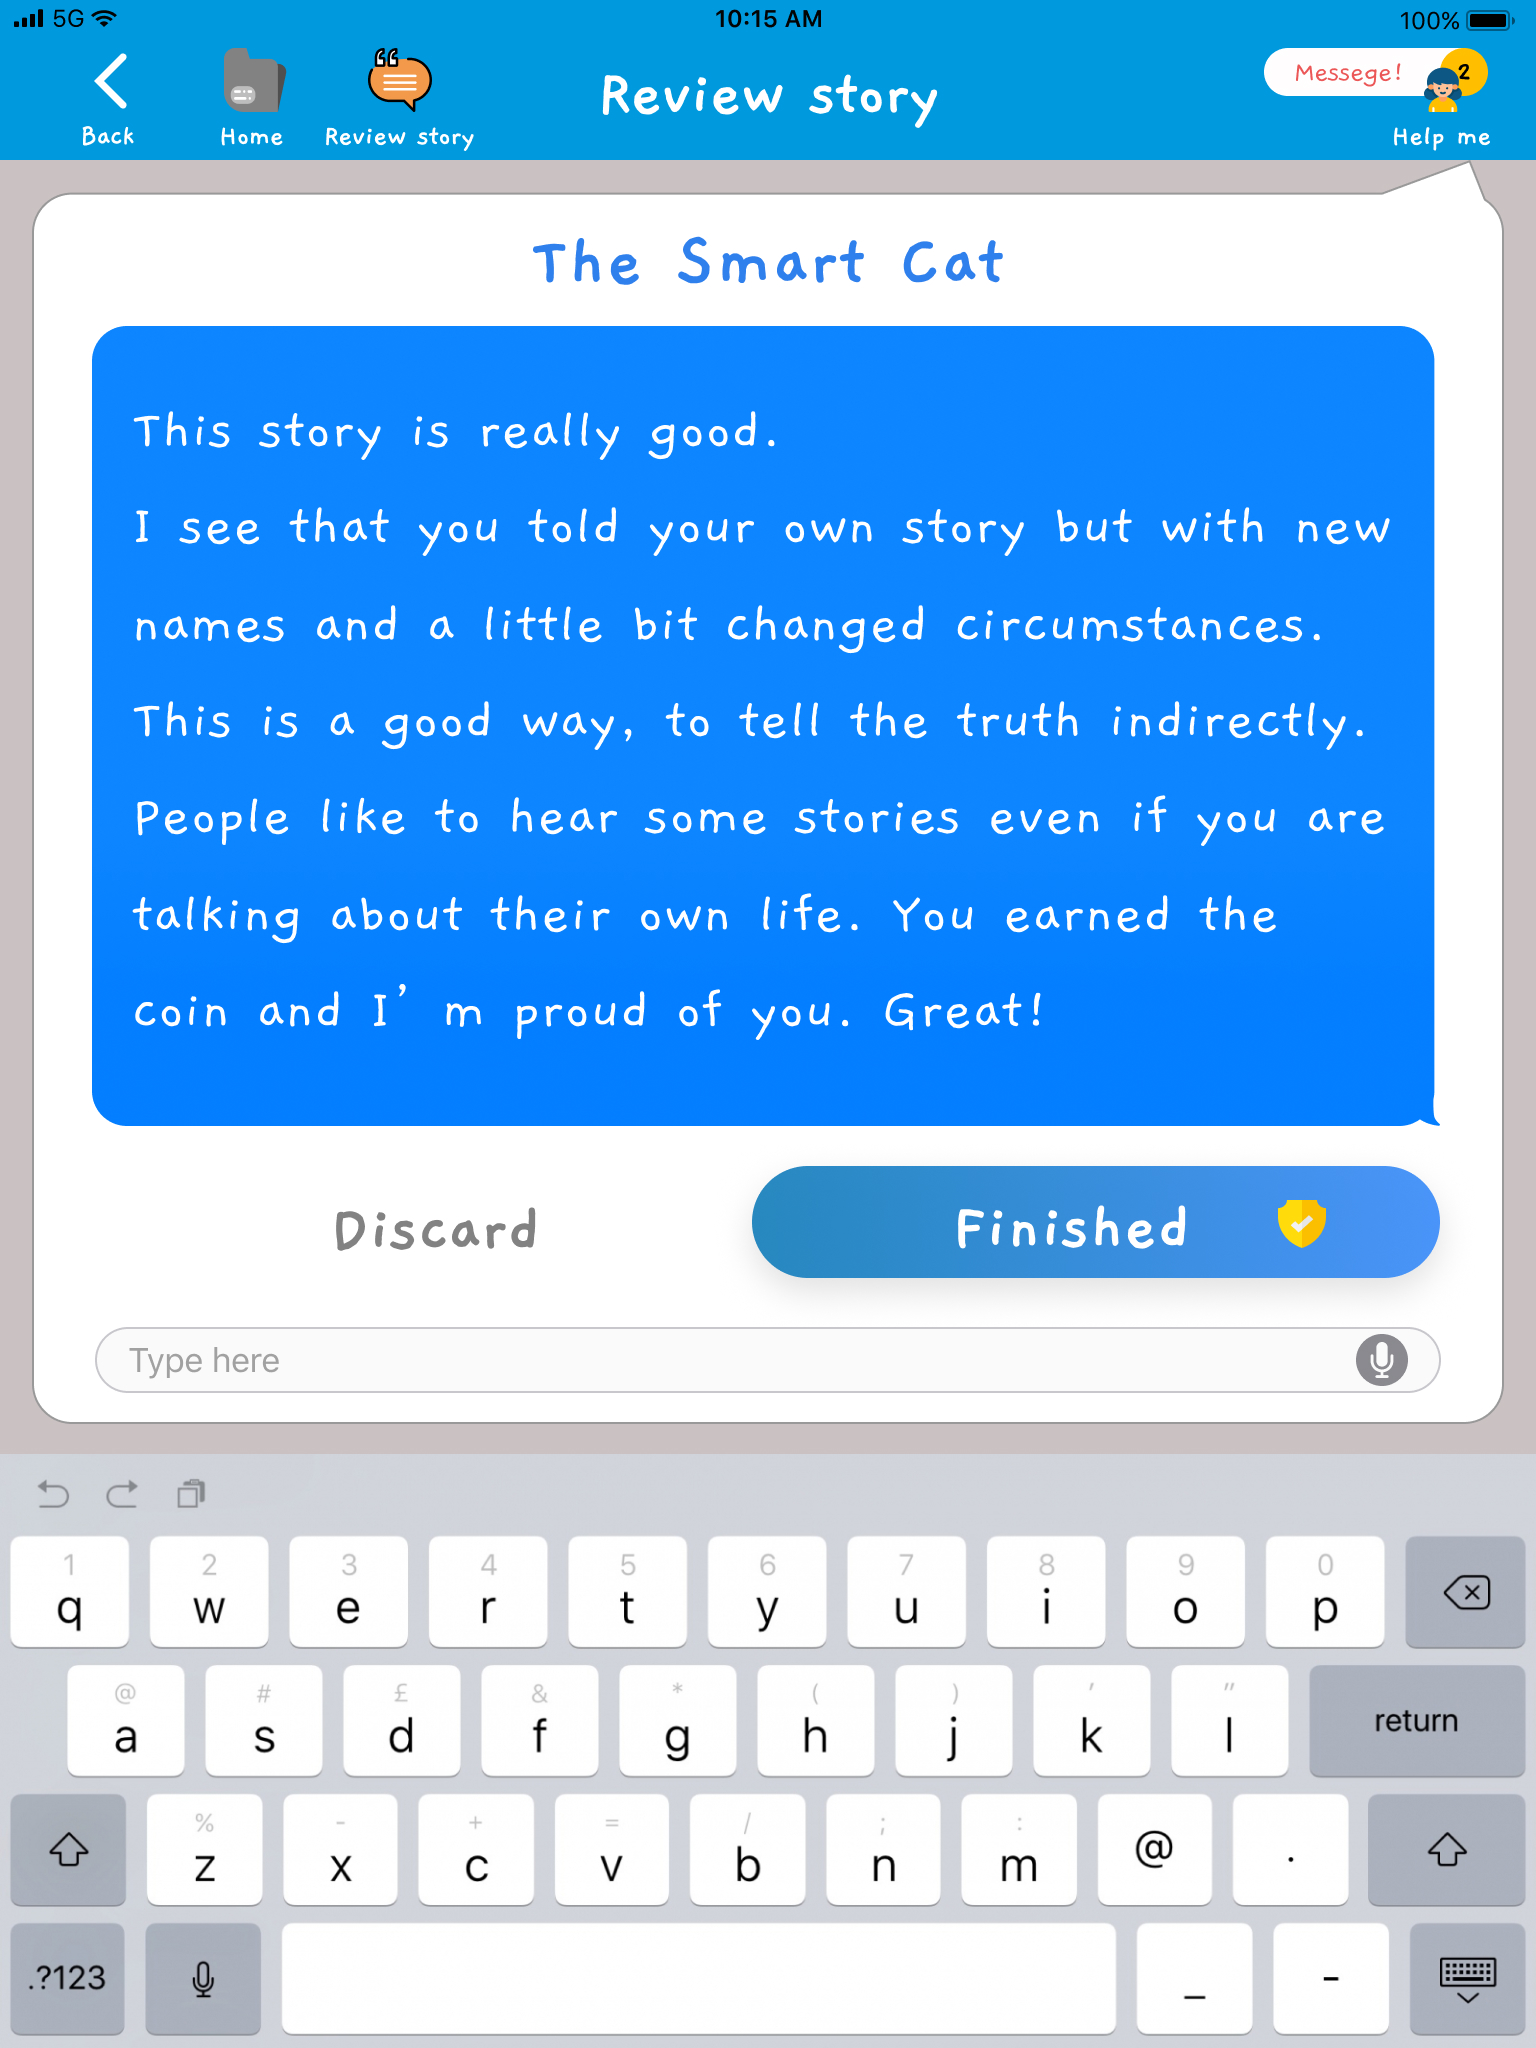 Existing story review screen with blue section filled with text